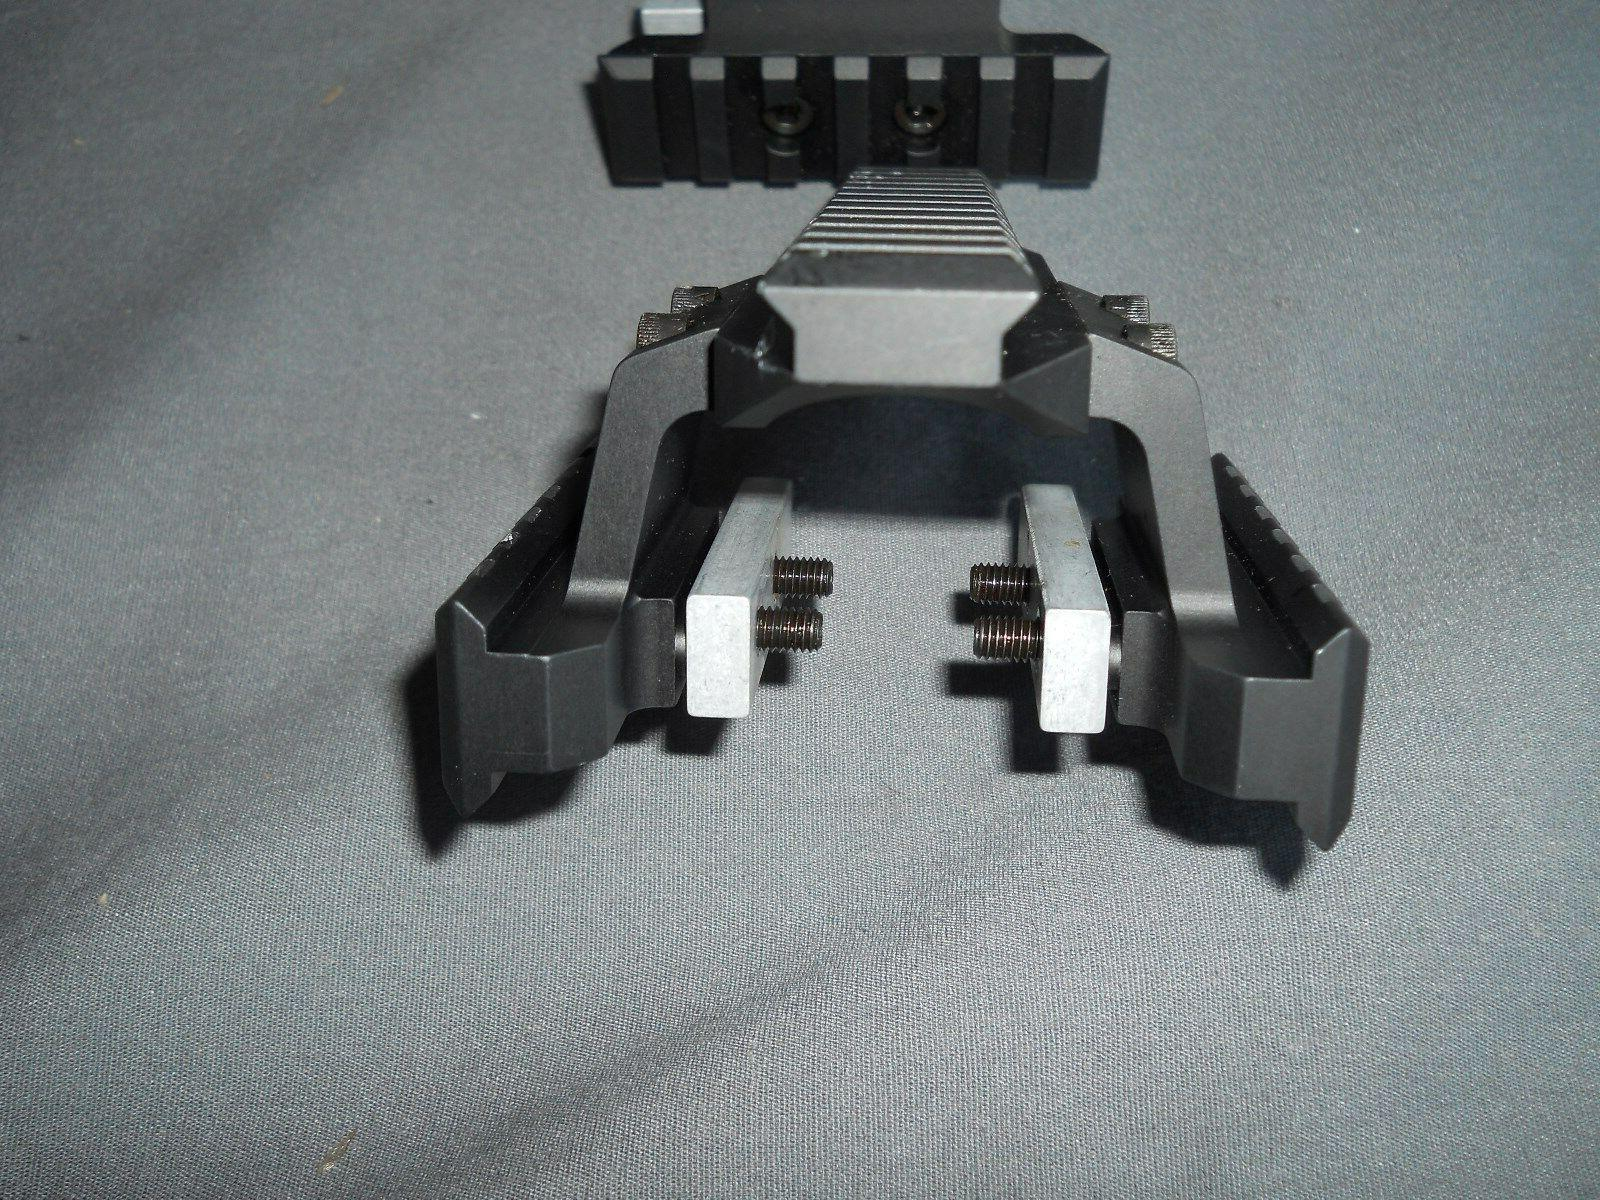 IN-Line / Clip-On Vision Embedded MOUNT